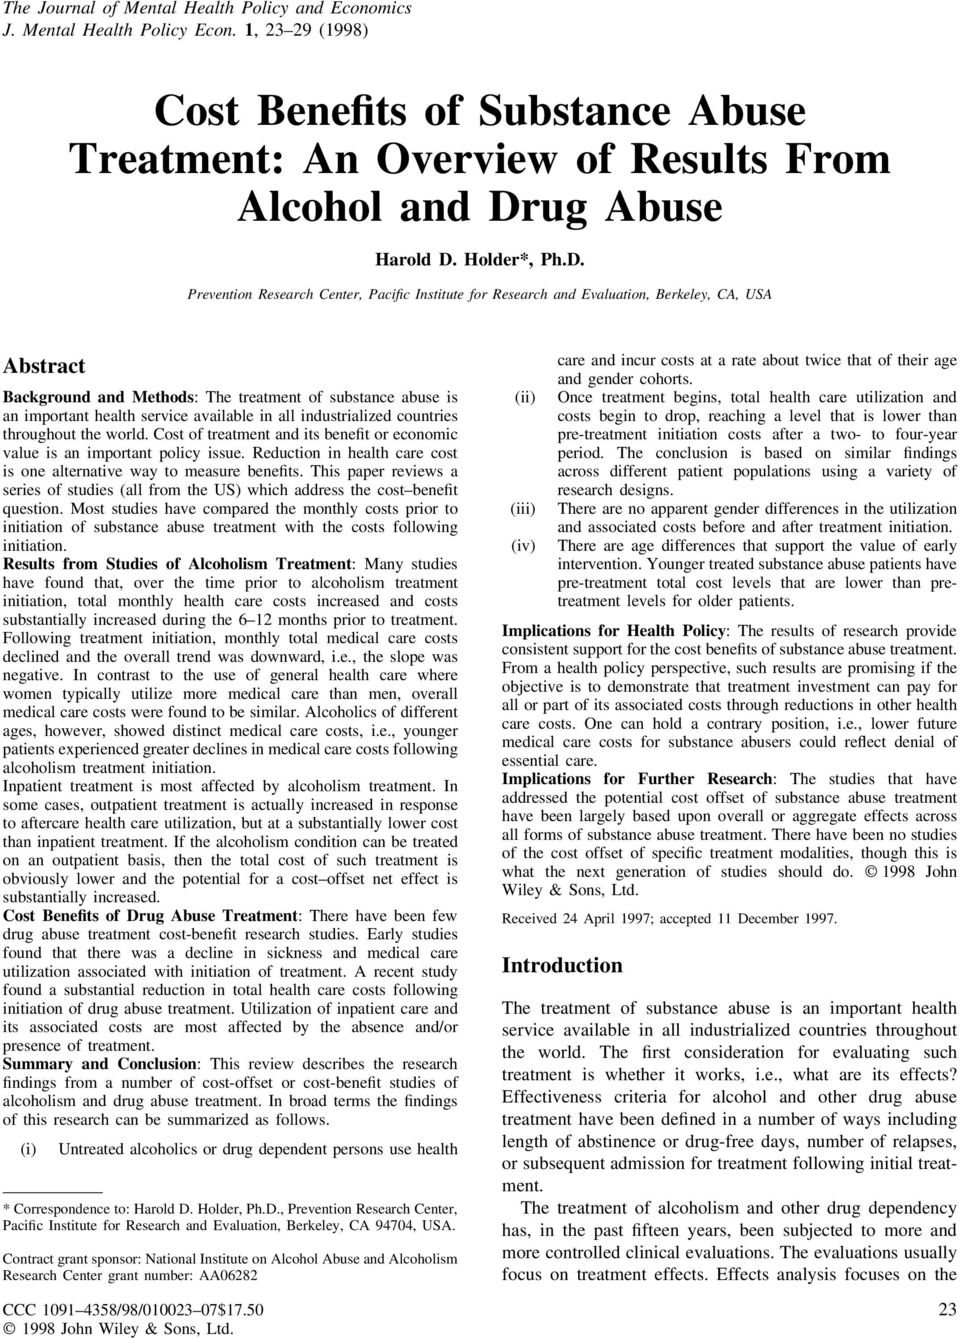 Prevention Research Center, Pacific Institute for Research and Evaluation, Berkeley, CA, USA Abstract Background and Methods: The treatment of substance abuse is an important health service available